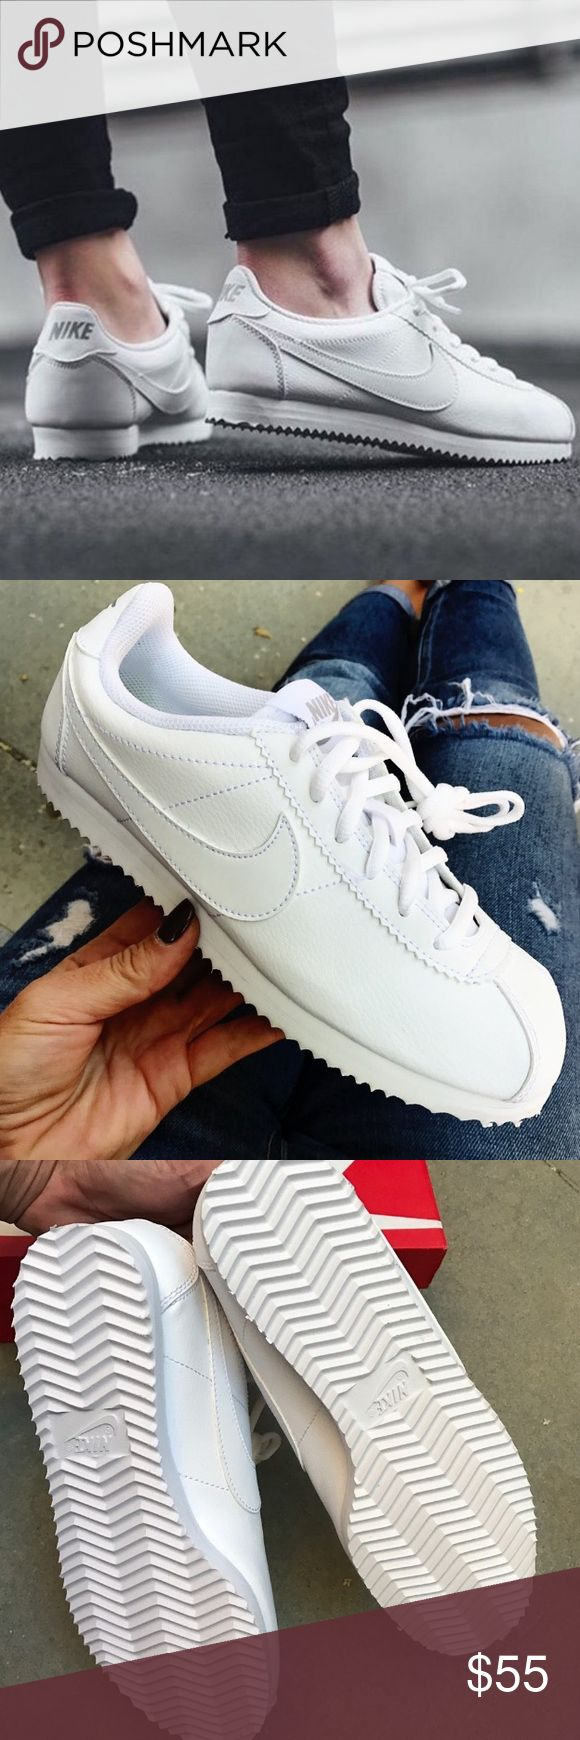 Nike Cortez leather all white shoes womens new Brand new without box. Shoes are a size 6.5 youth which converts into a women's size 8.I have added a size chart for reference. 100% authentic. Ships same day or very next. Nike Shoes Sneakers